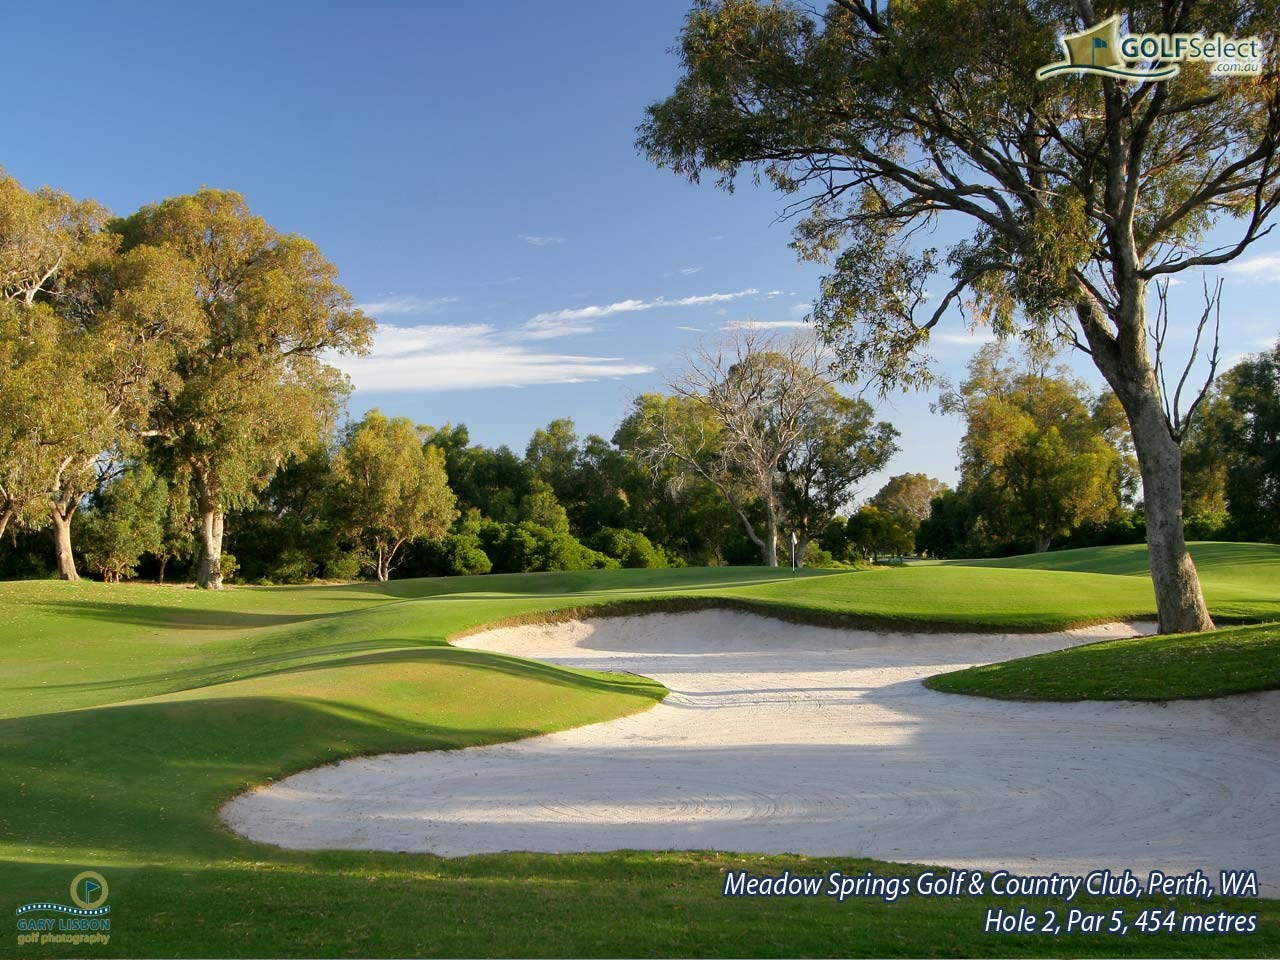 Meadow Springs Golf & Country Club Hole 2, Par 5, 454 metres